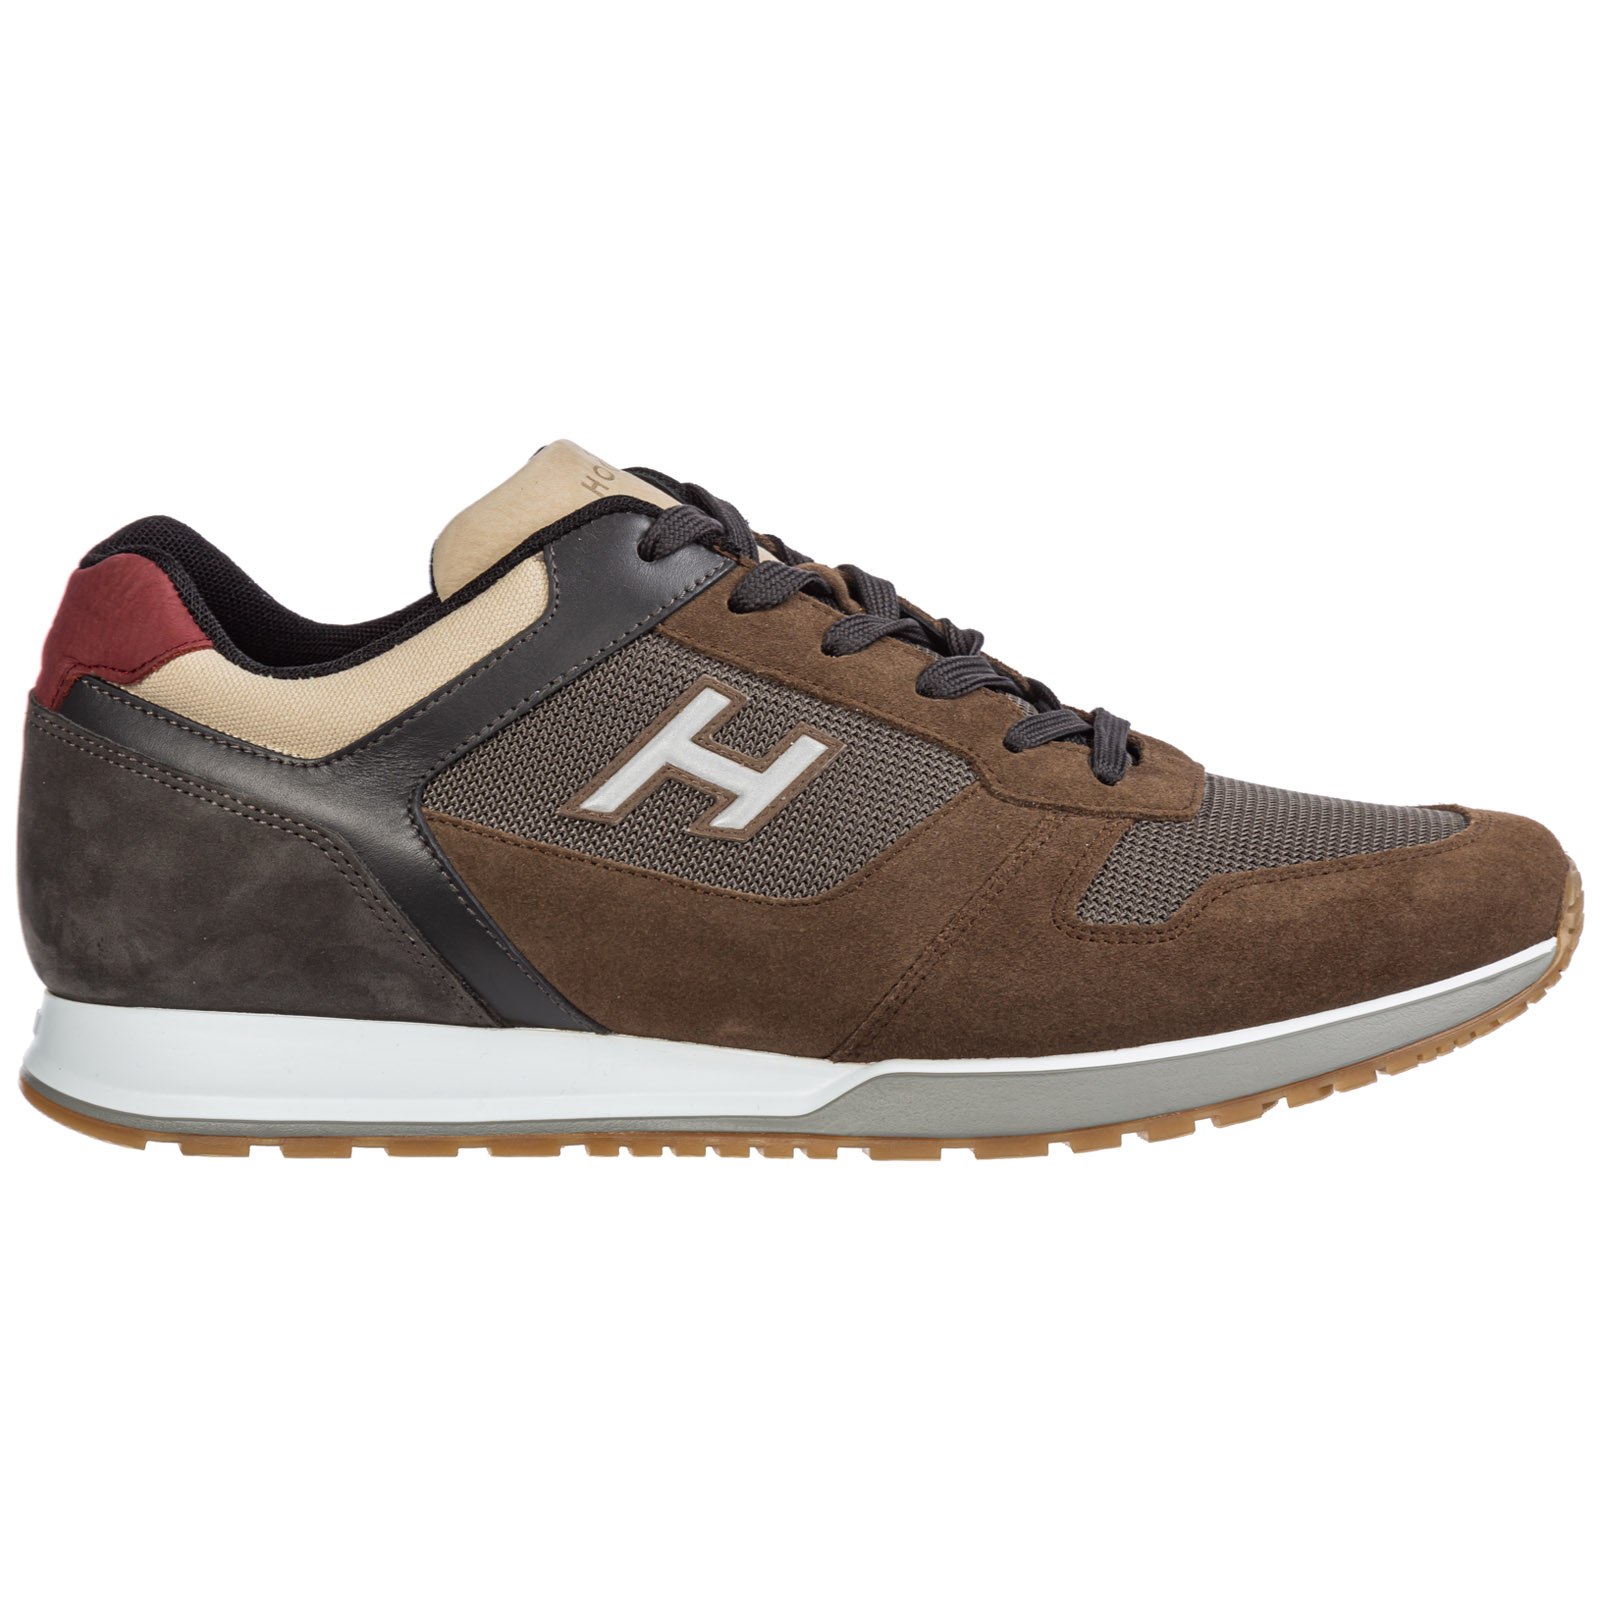 Men's shoes suede trainers sneakers h321